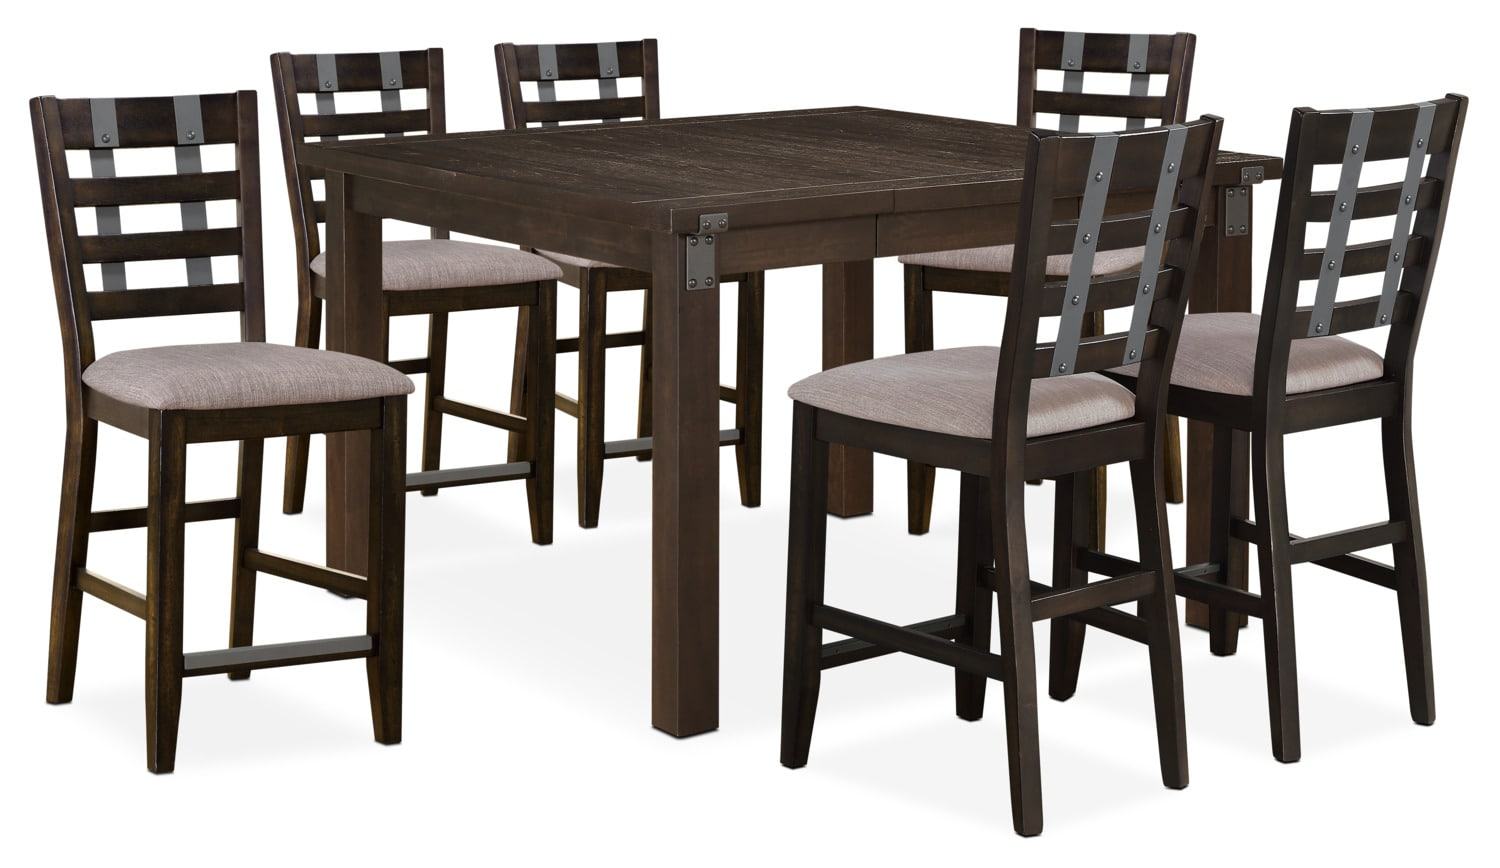 Dining Room Furniture   Hampton Counter Height Dining Table And 6 Stools    Cocoa